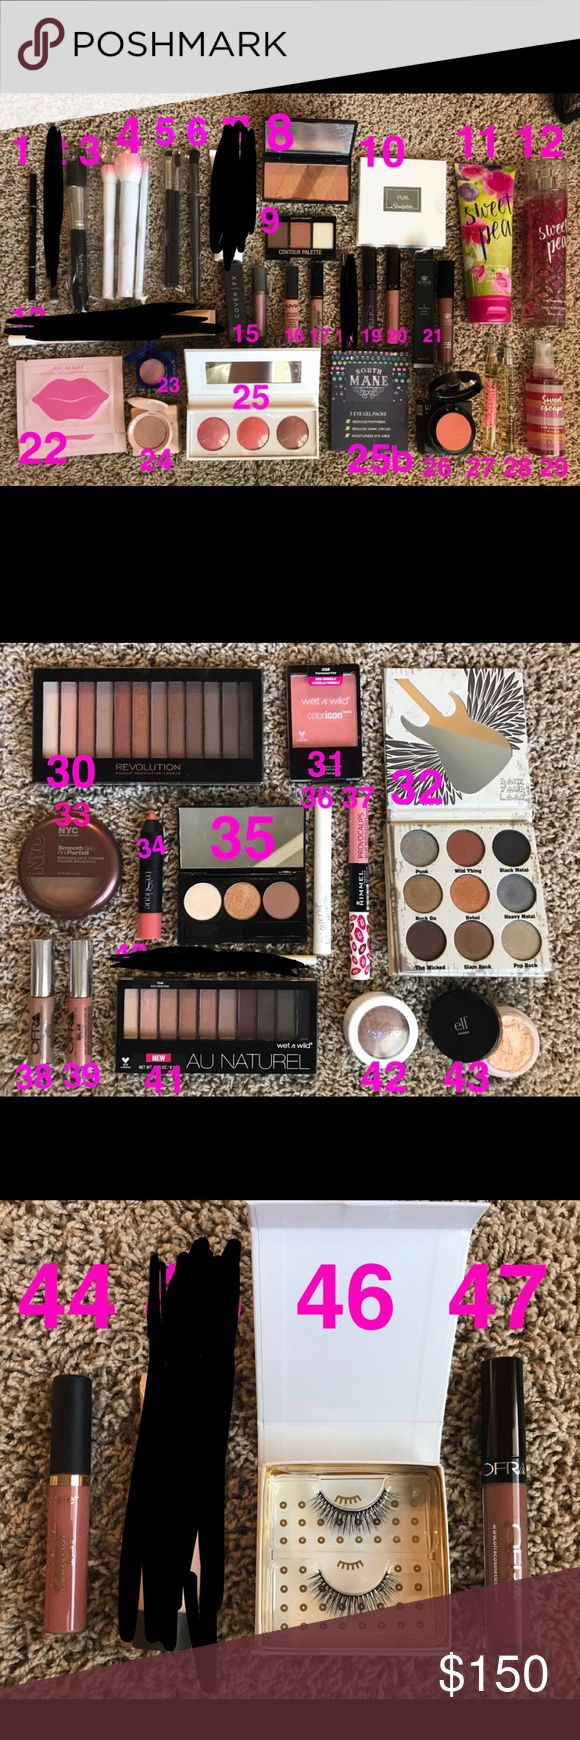 50+ item makeup lot high end and drugstore brands. most